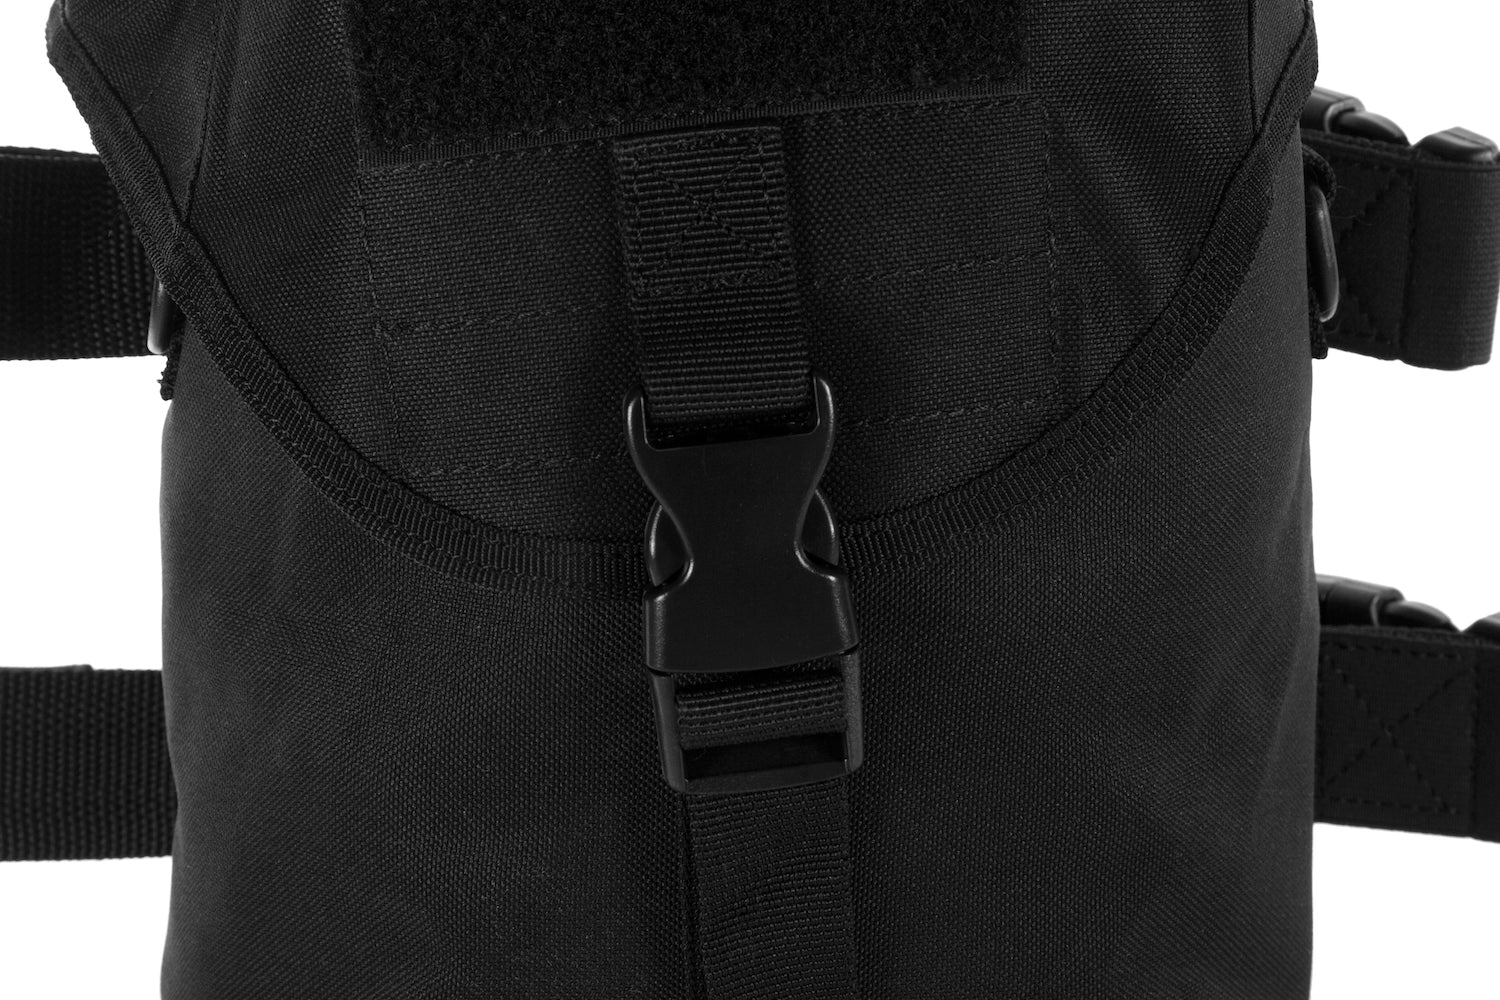 MIRA Safety gas mask pouch front view closeup